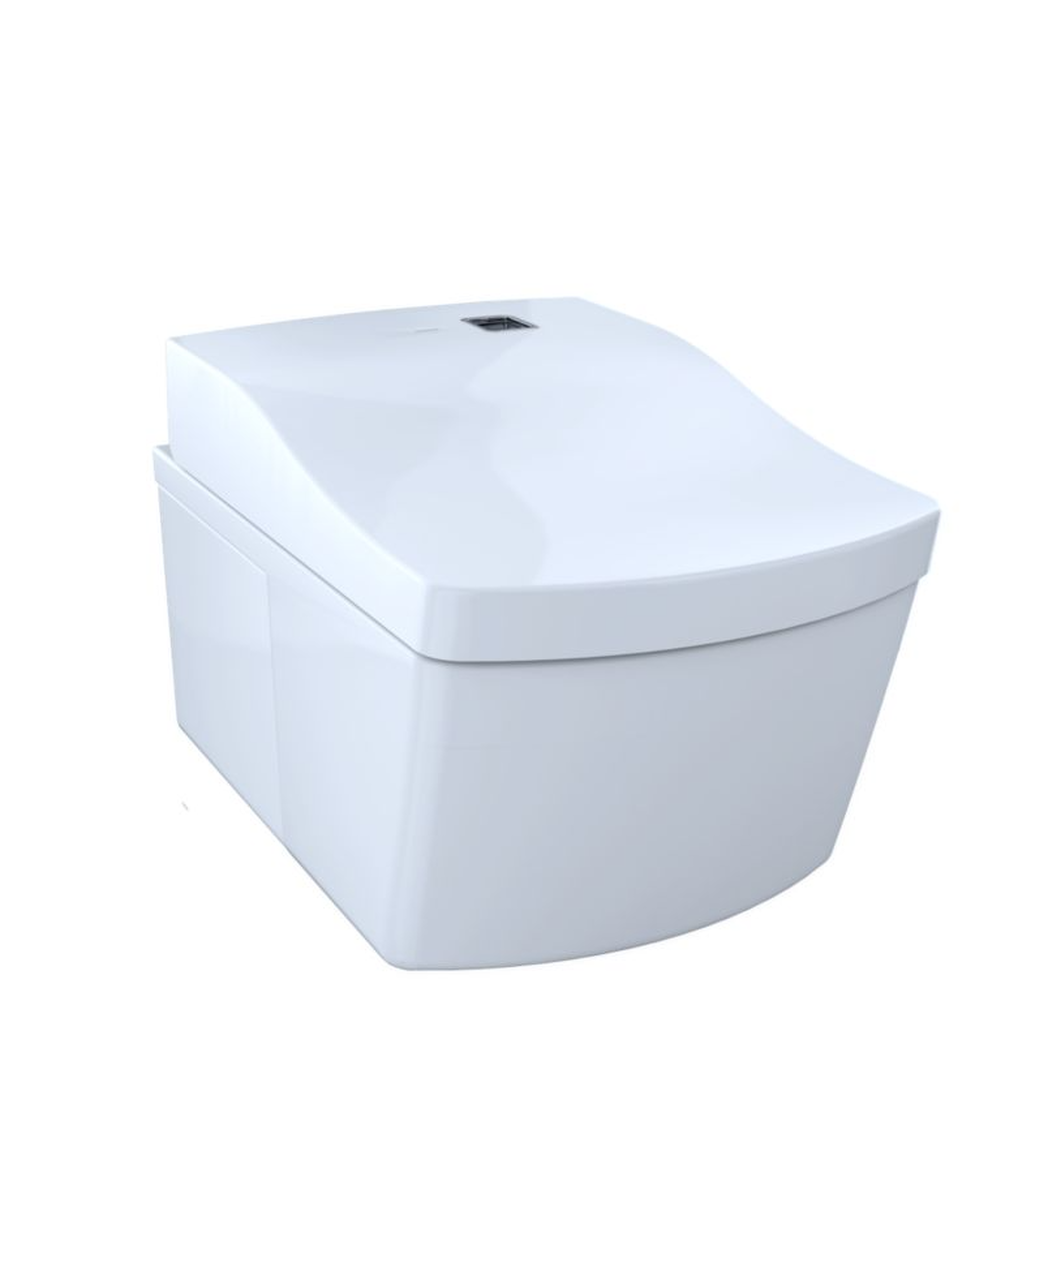 Toto Neorest Ew Wall Hung Dual Flush One Piece Toilet And